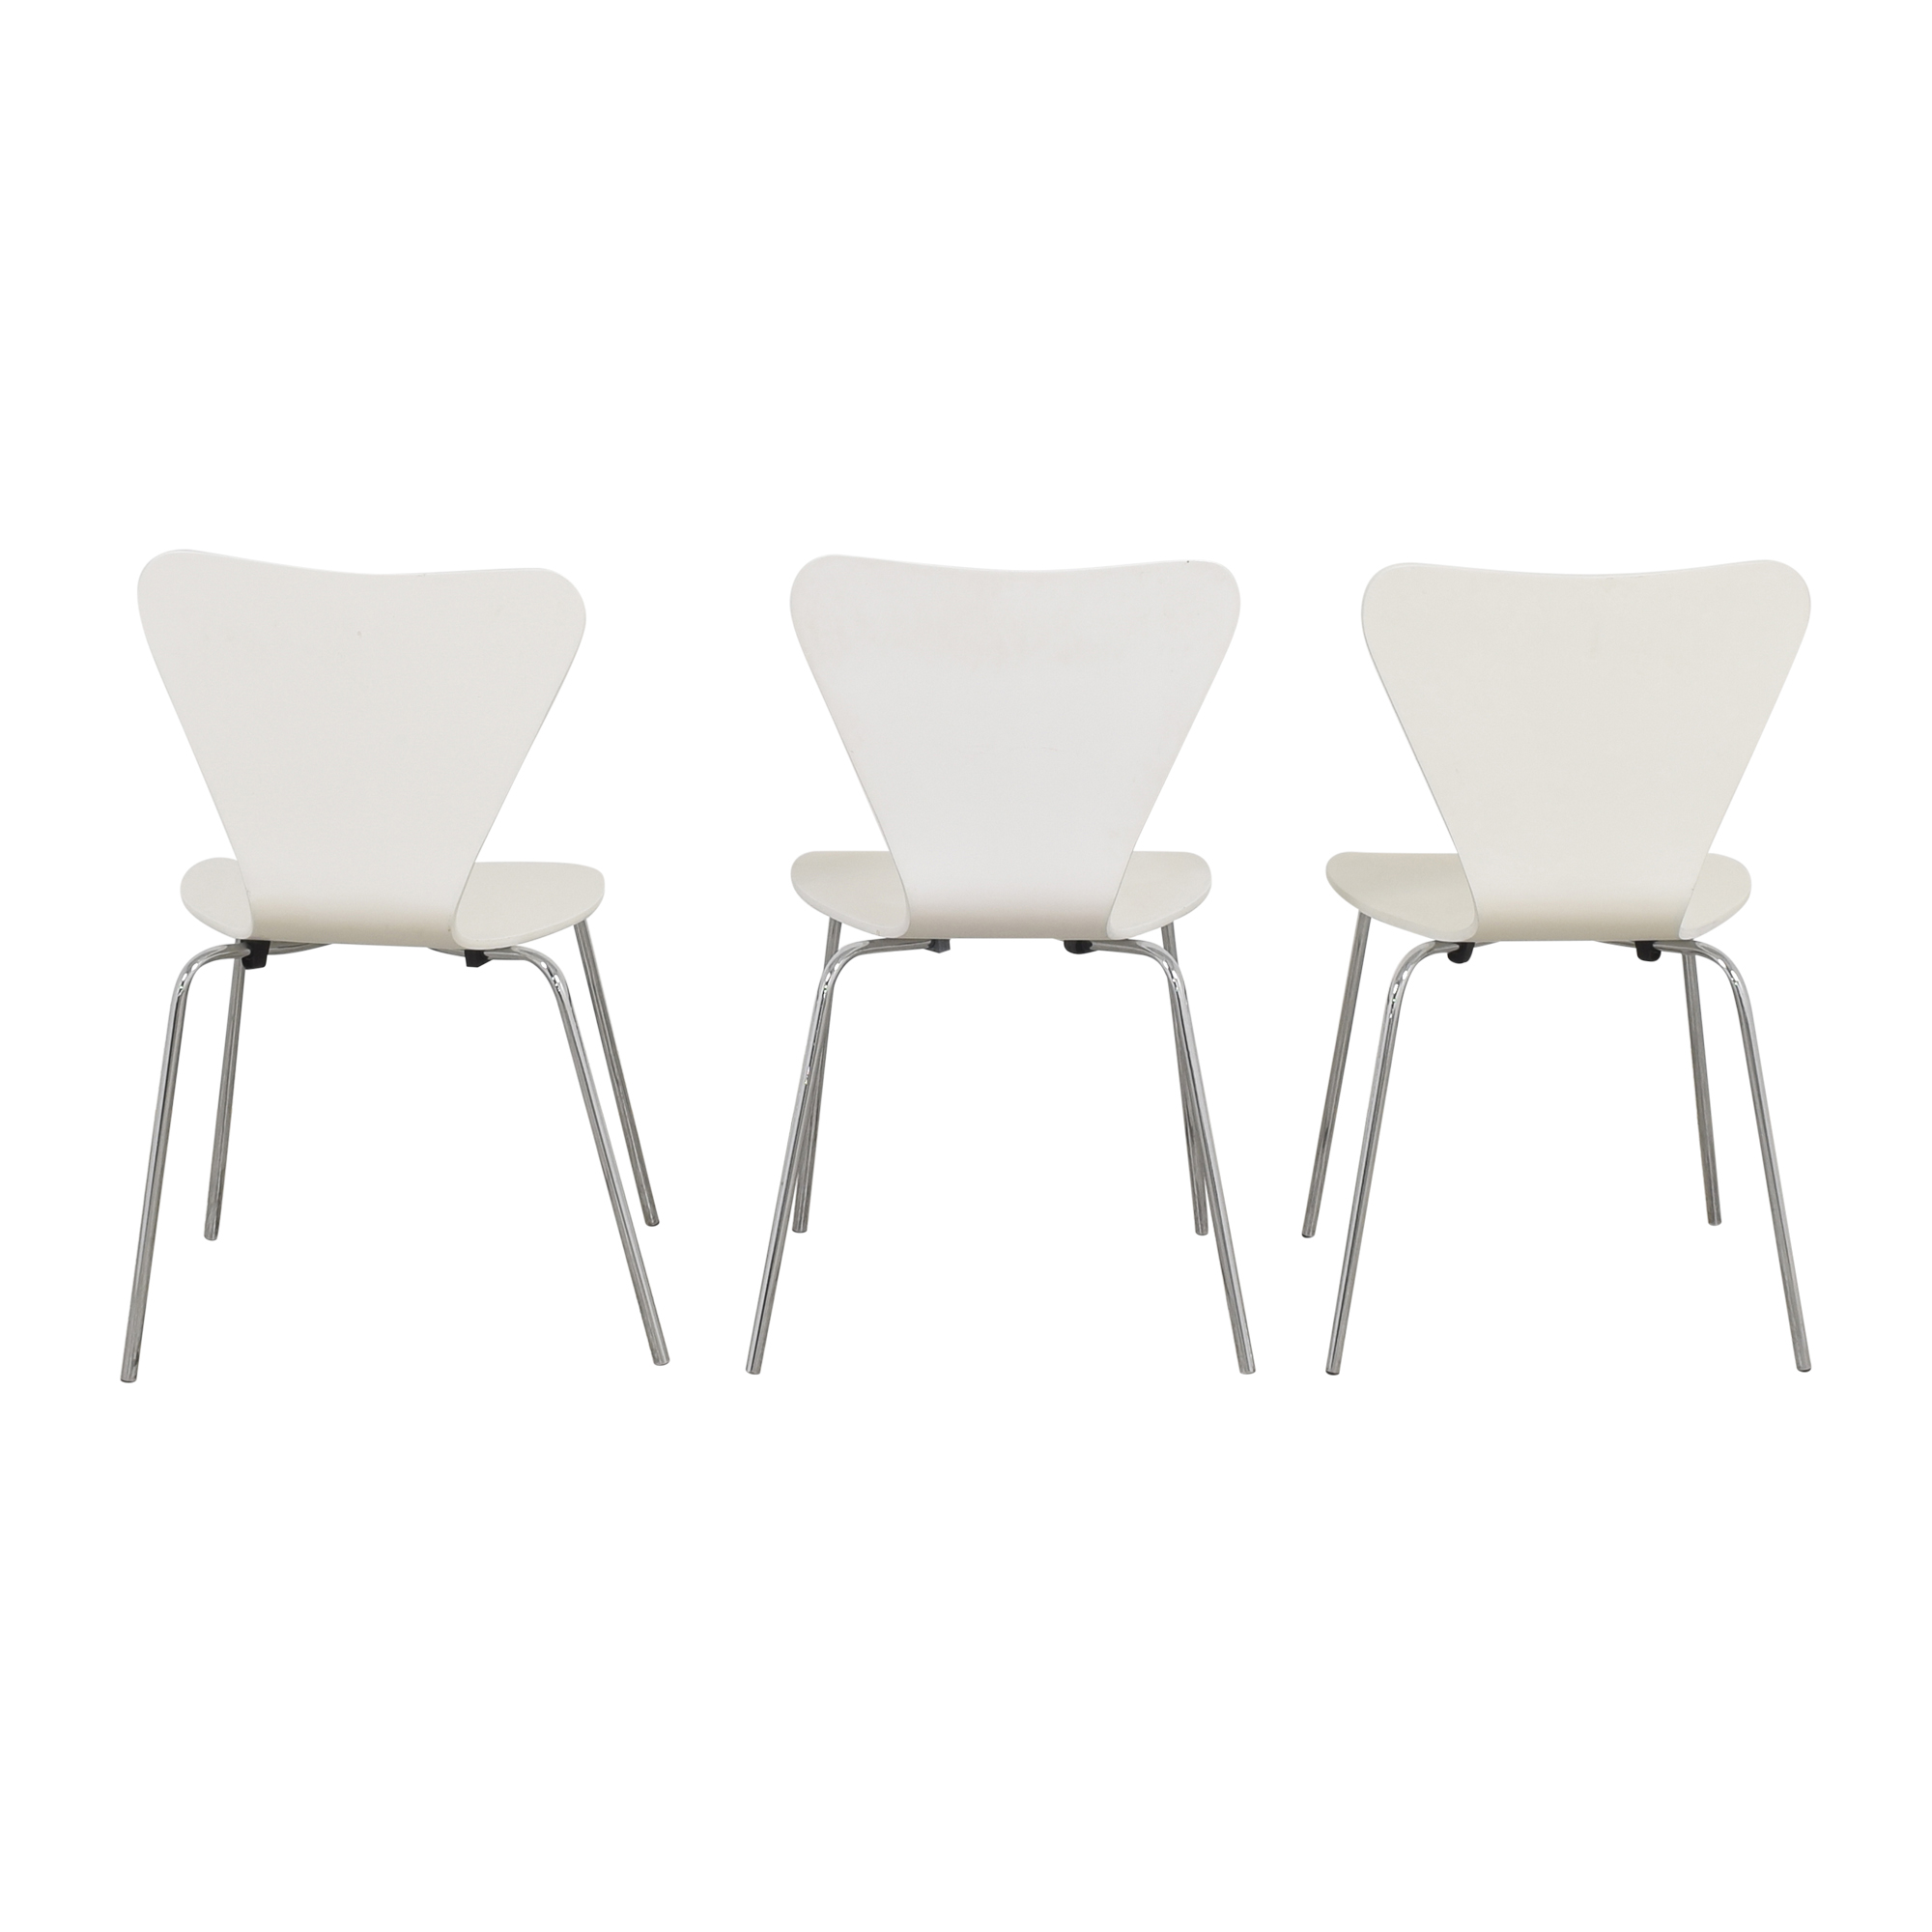 Room & Board Room & Board Jake Dining Chairs used